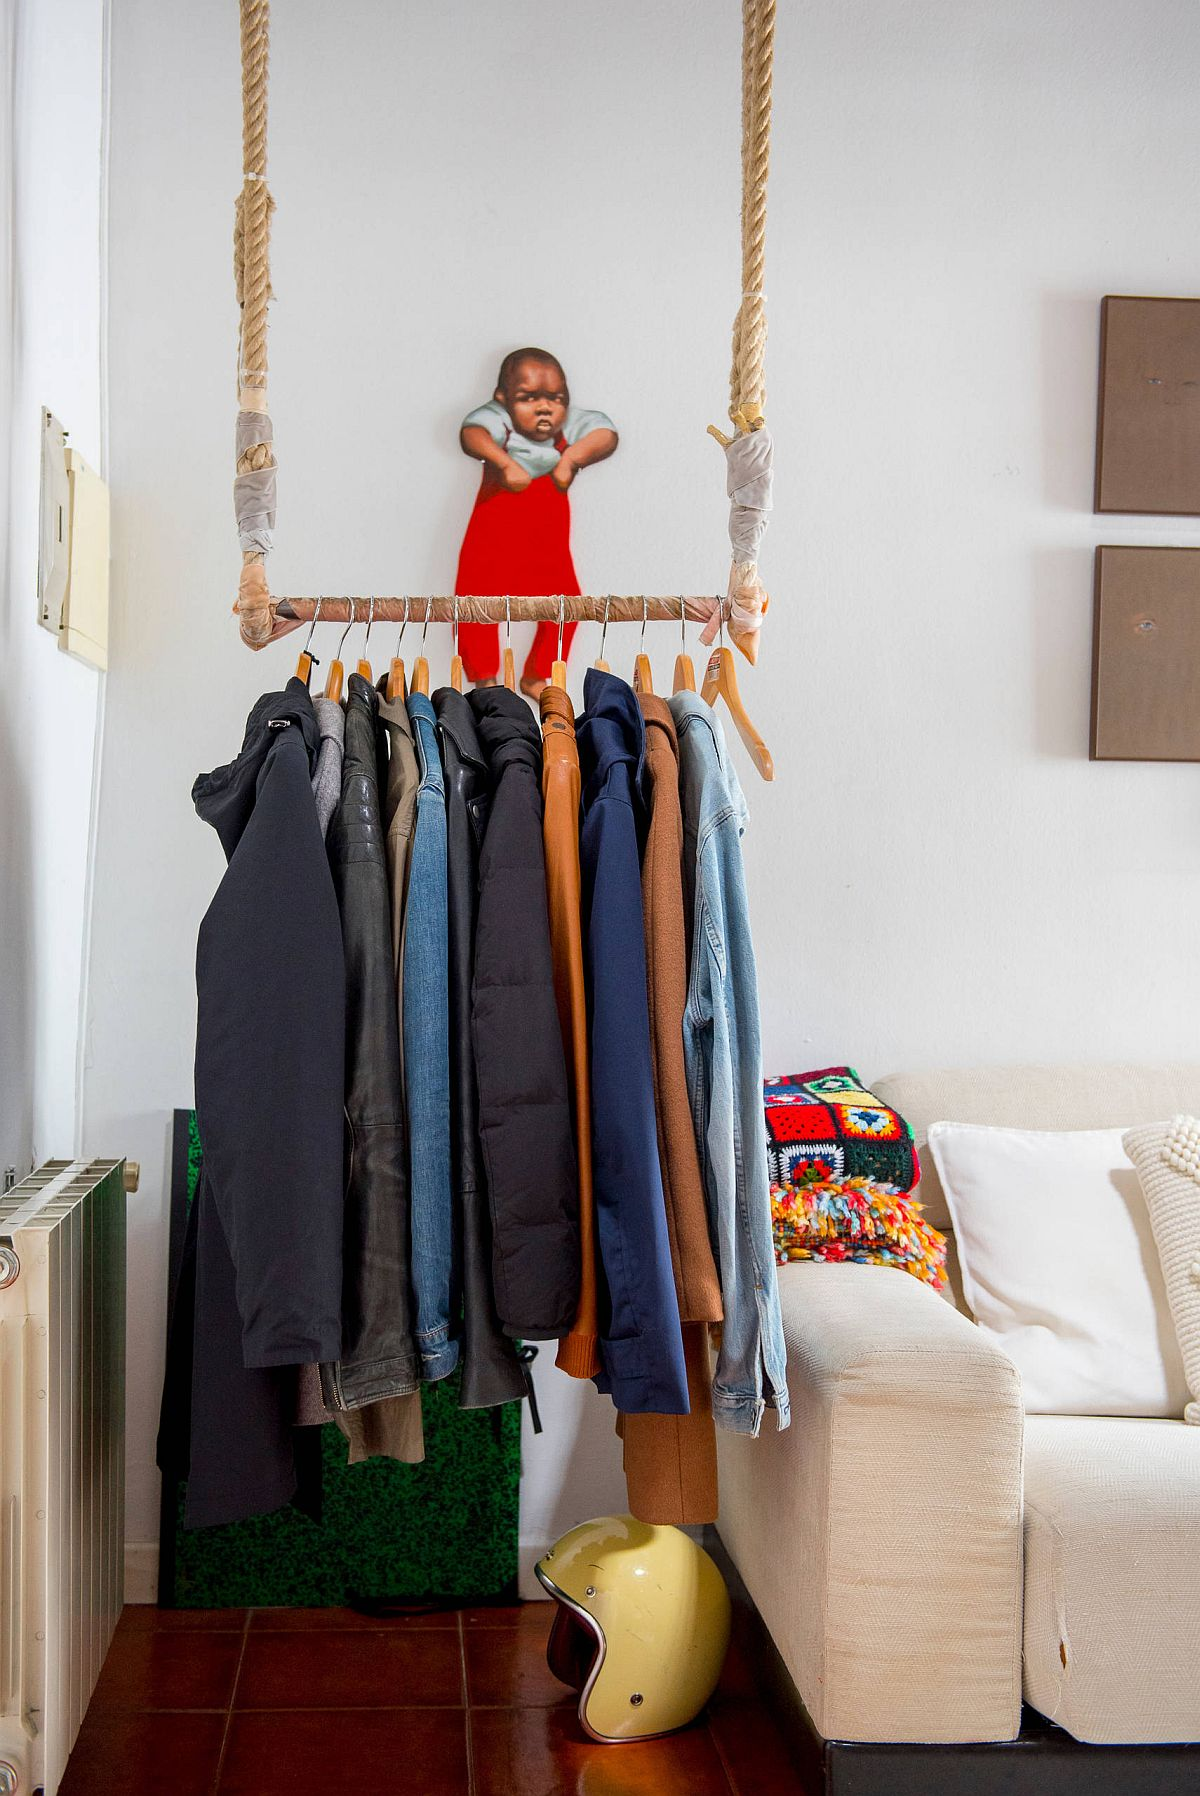 Fun hanging rod can provide a closet all on its own!